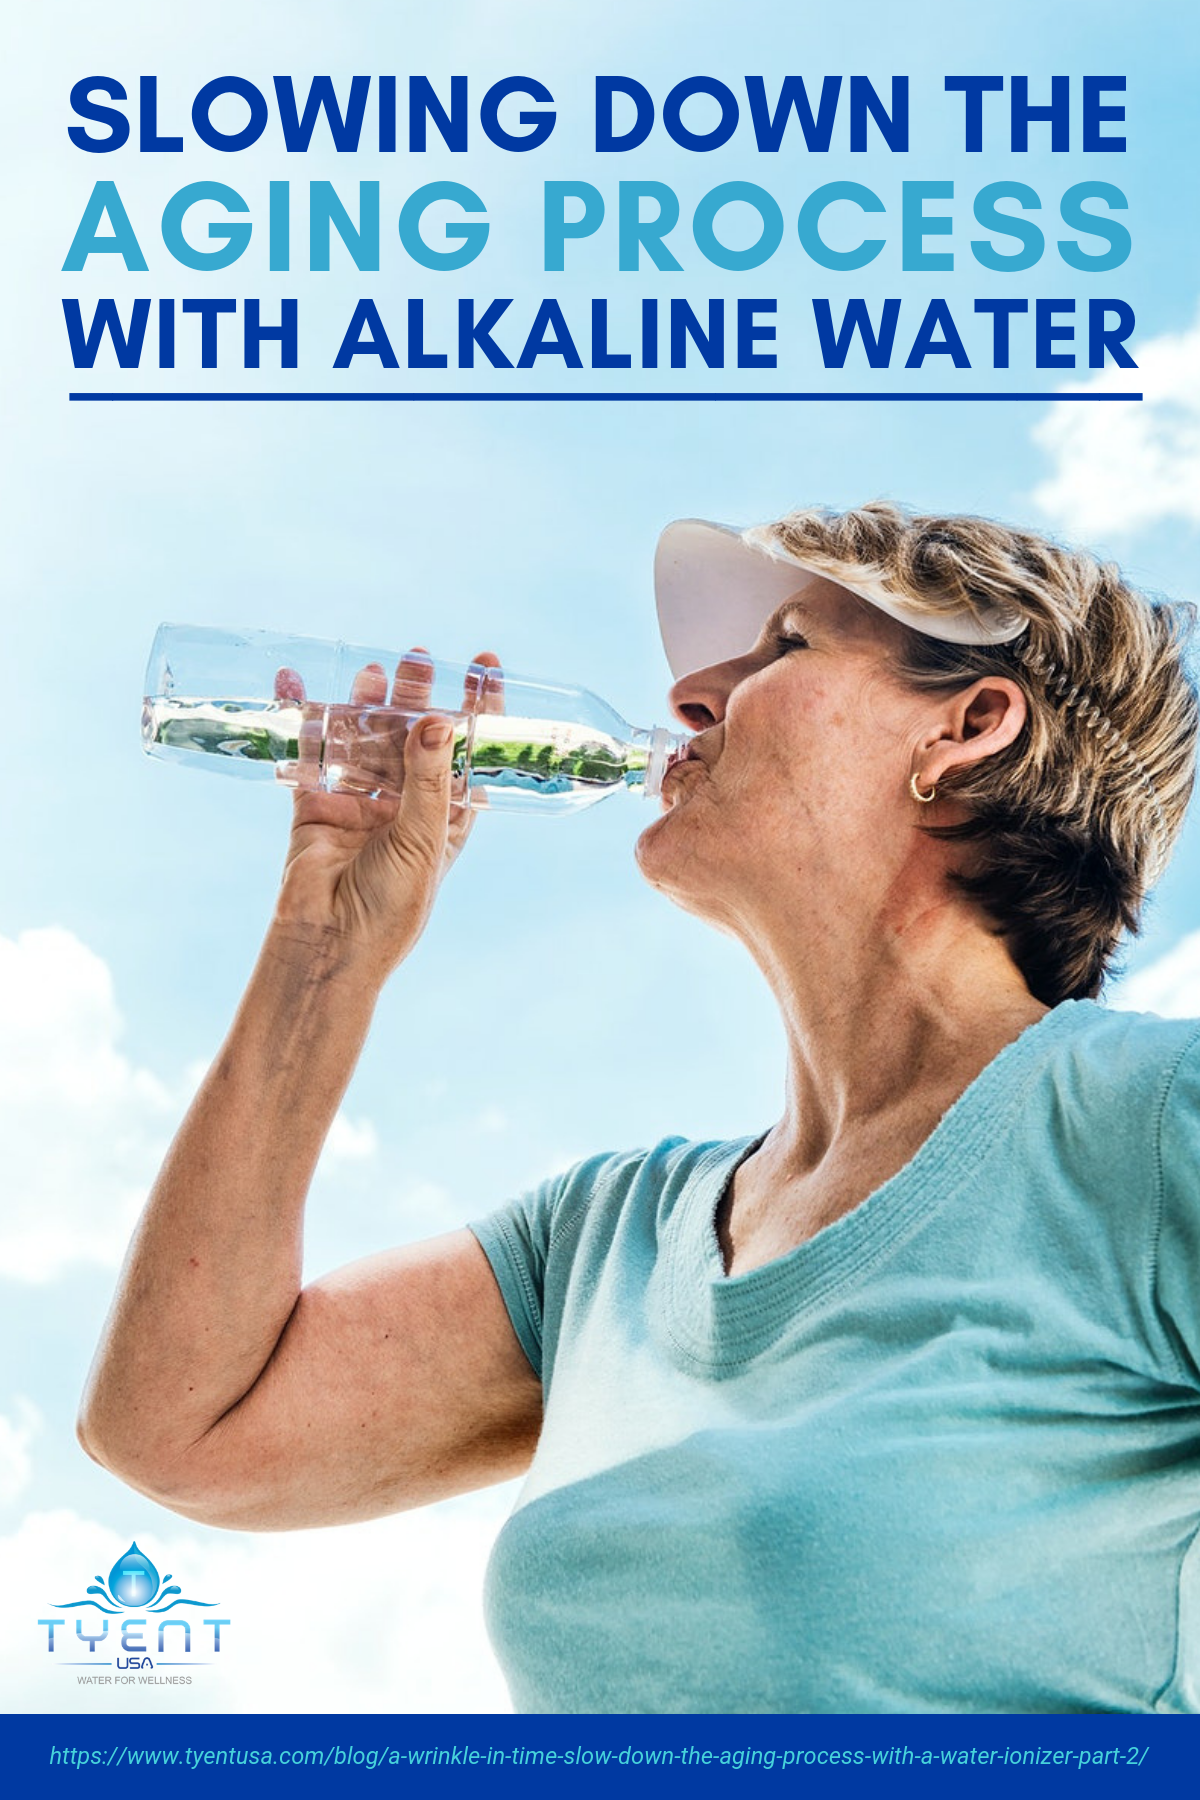 Slowing Down the Aging Process with Alkaline Water https://www.tyentusa.com/blog/a-wrinkle-in-time-slow-down-the-aging-process-with-a-water-ionizer-part-2